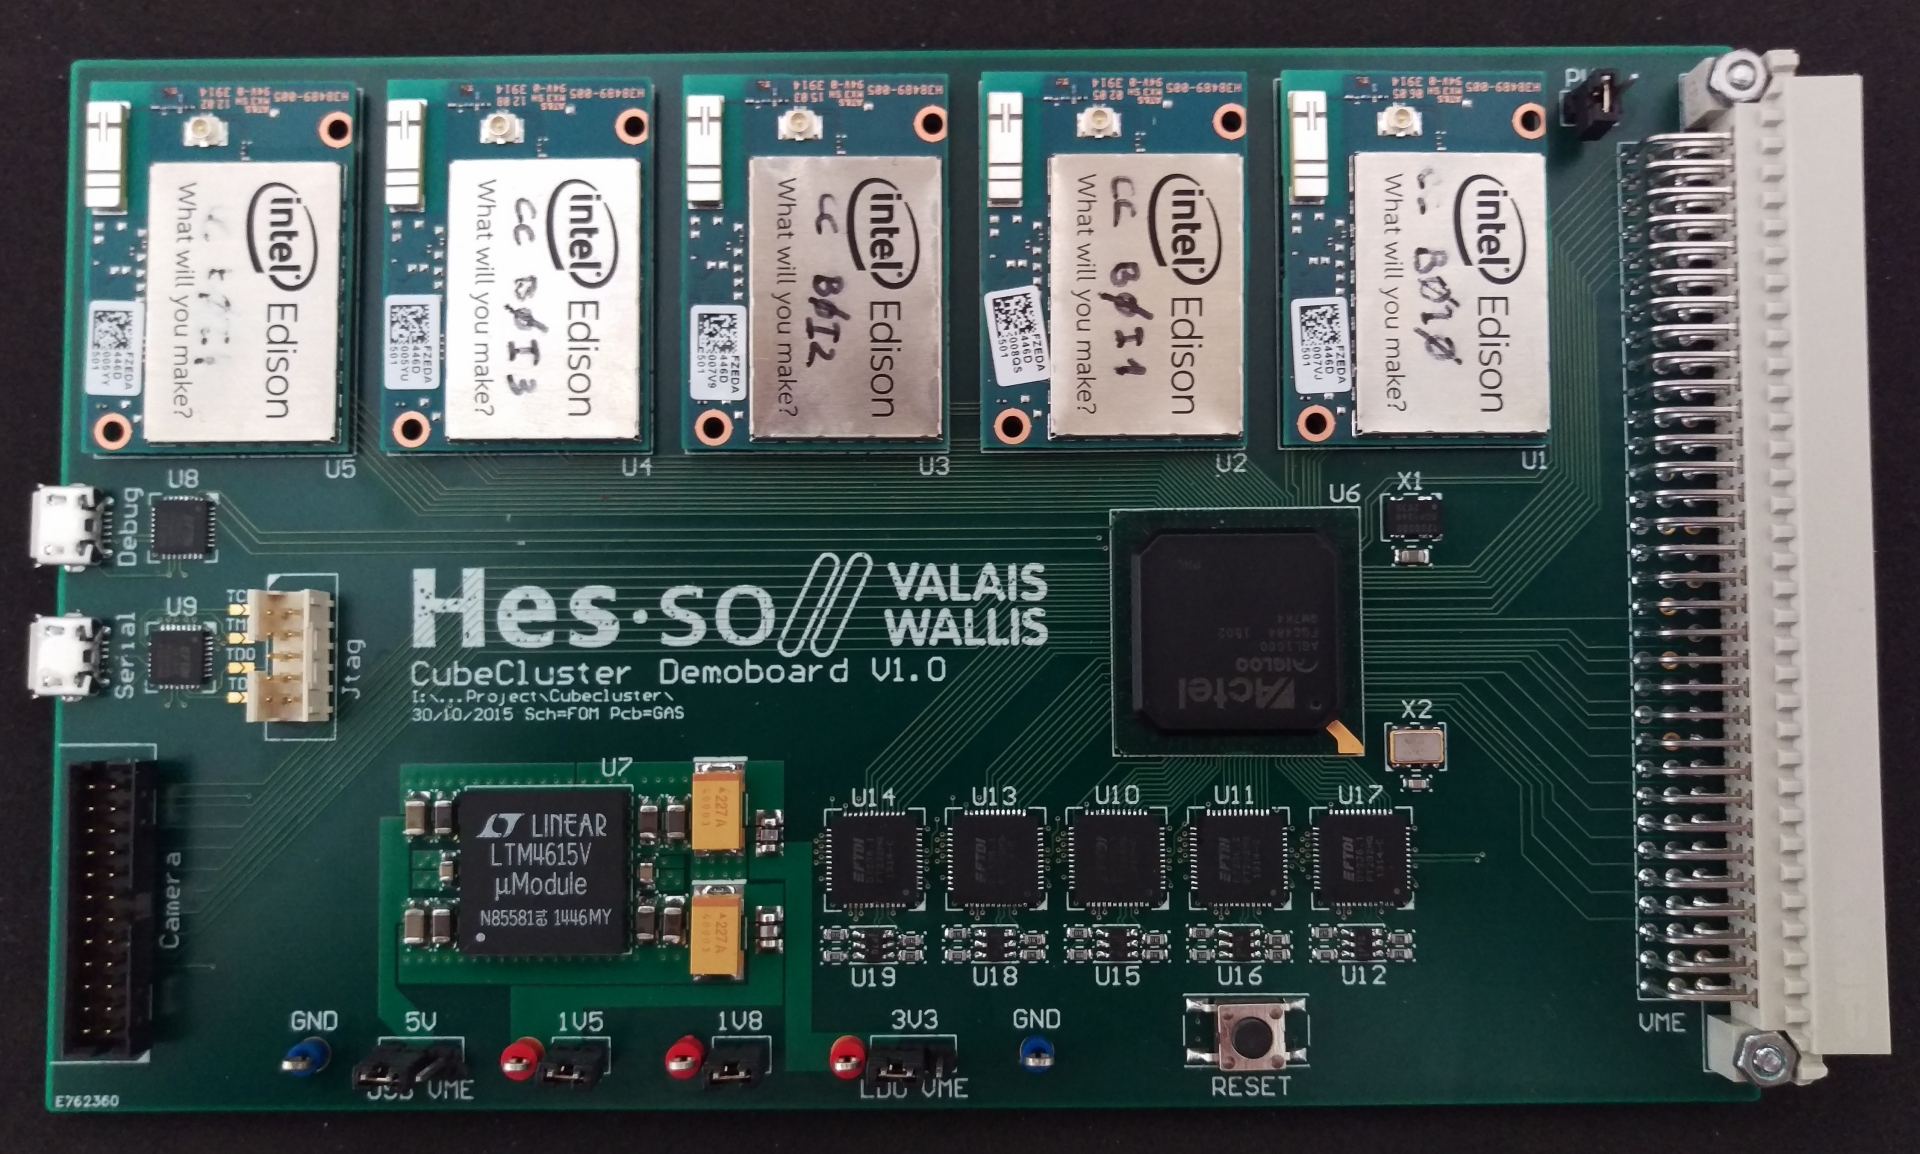 Low-Power High-Performance Unit for CubeSat - HES-SO Valais